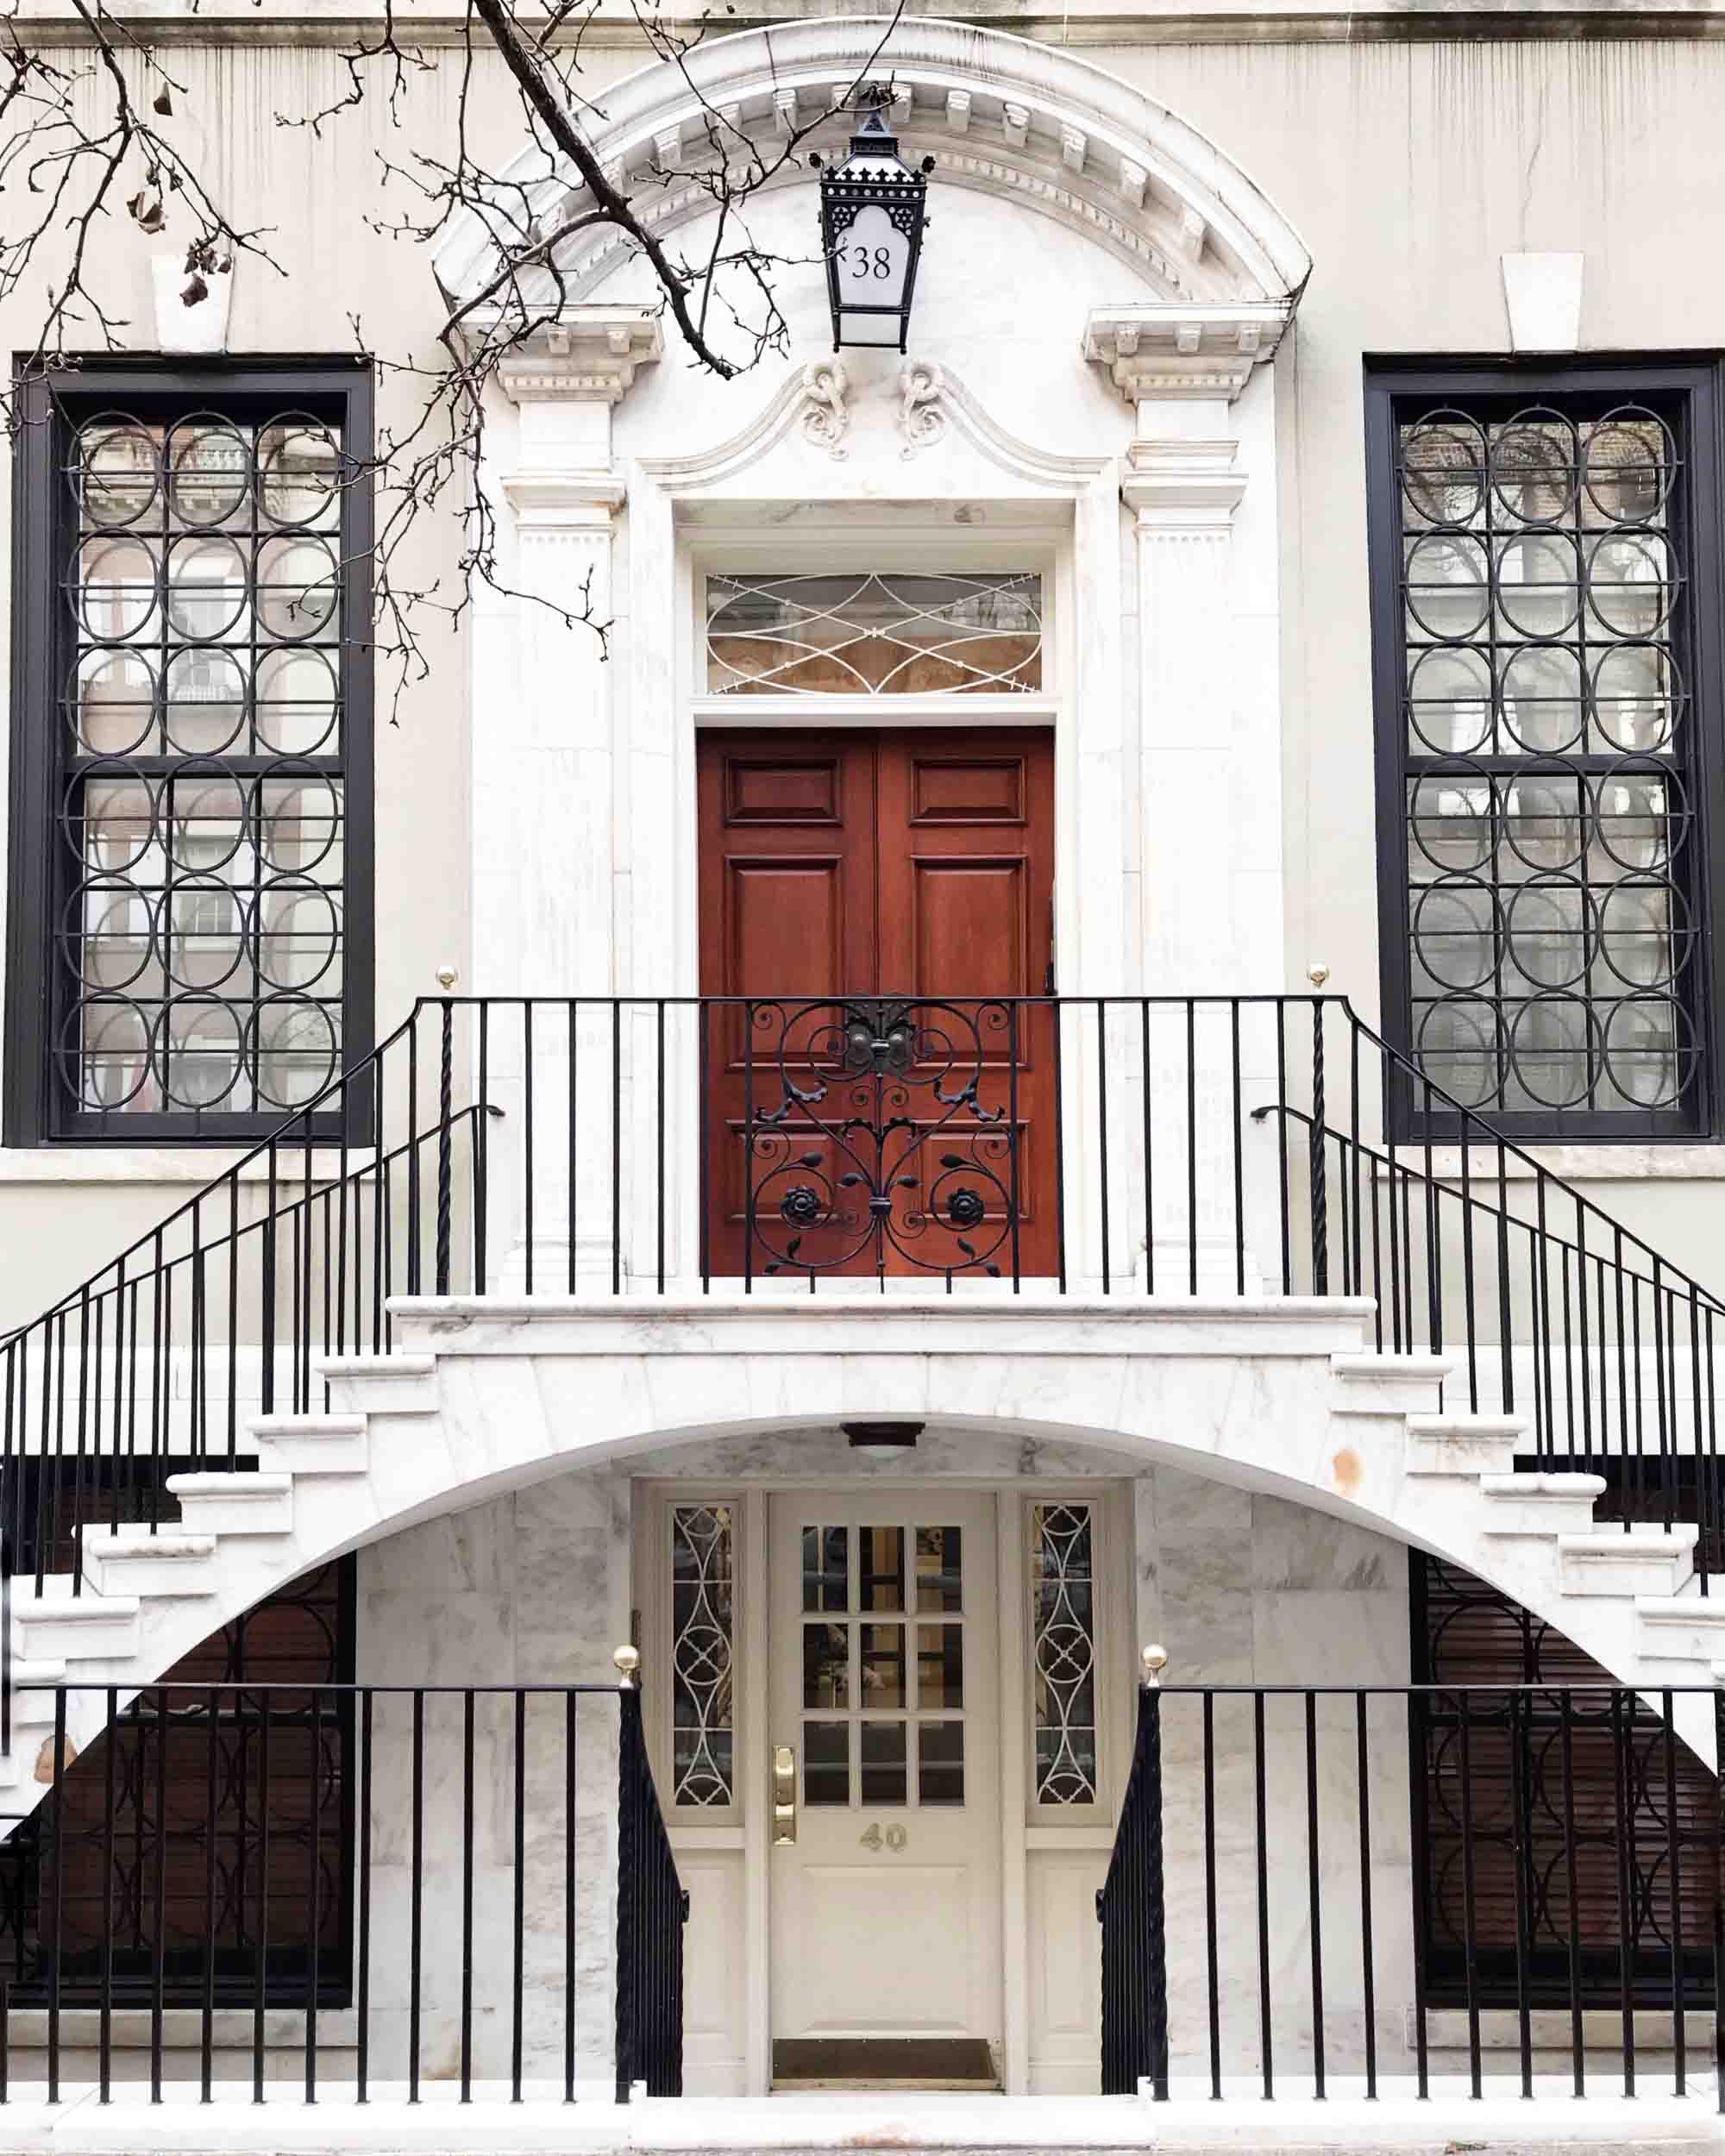 Upper East Side townhouse with double staircase